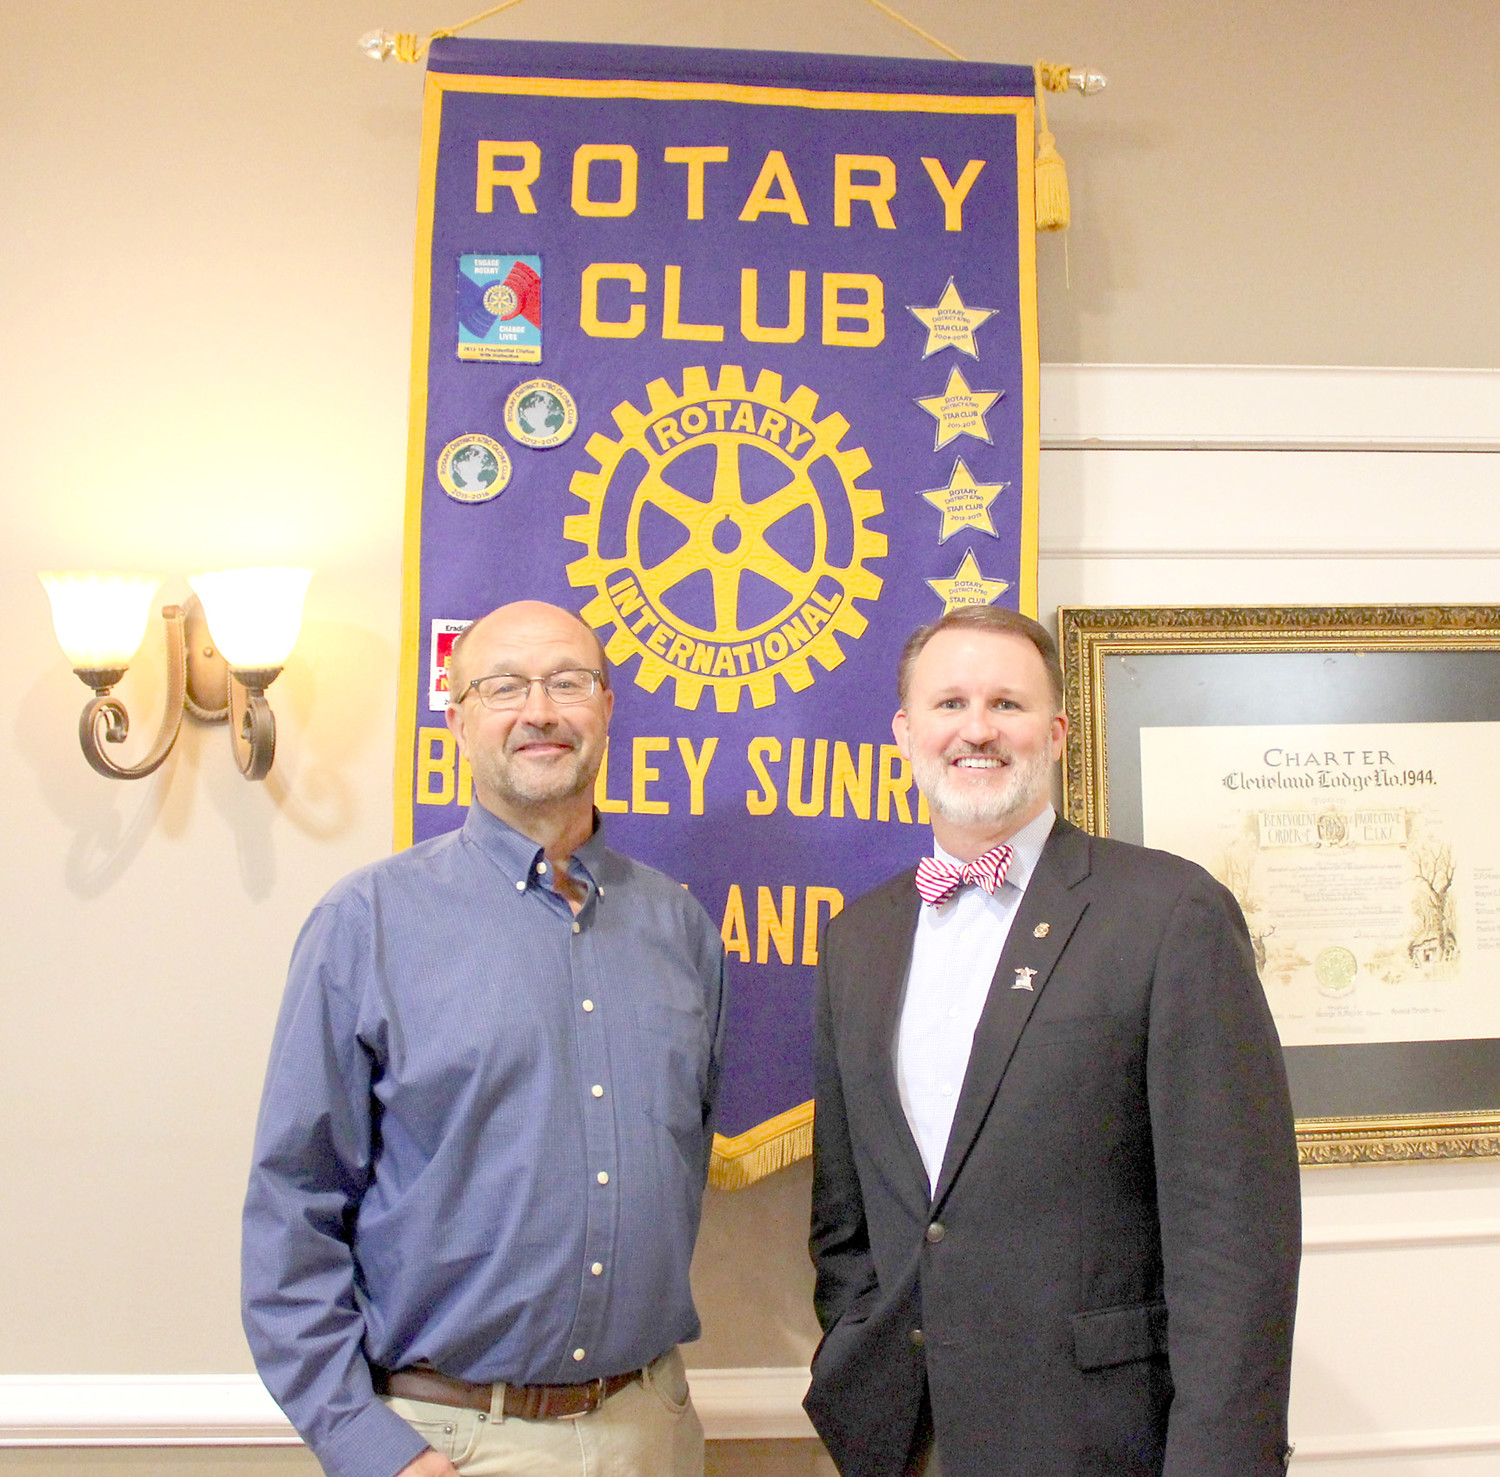 FORESTRY efforts in Cleveland were the focus of a recent Bradley Sunrise Rotary Club meeting. From left are Cleveland Urban Forester Dan Hartman and club President Matthew Coleman.